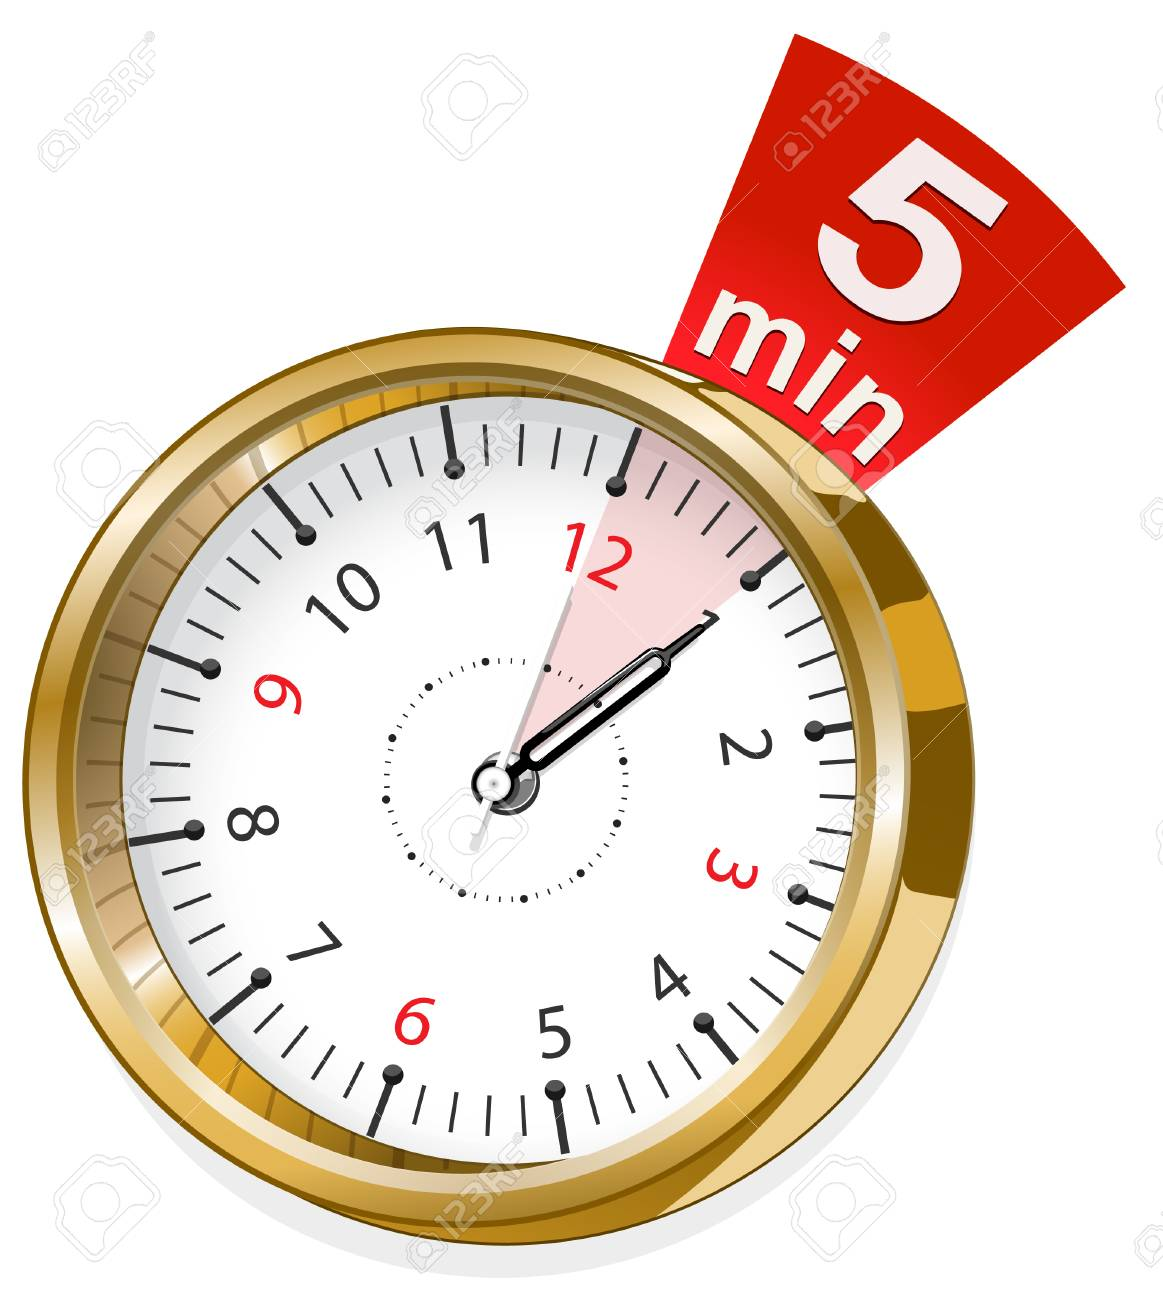 timer showing 5 min stock vector 28221789